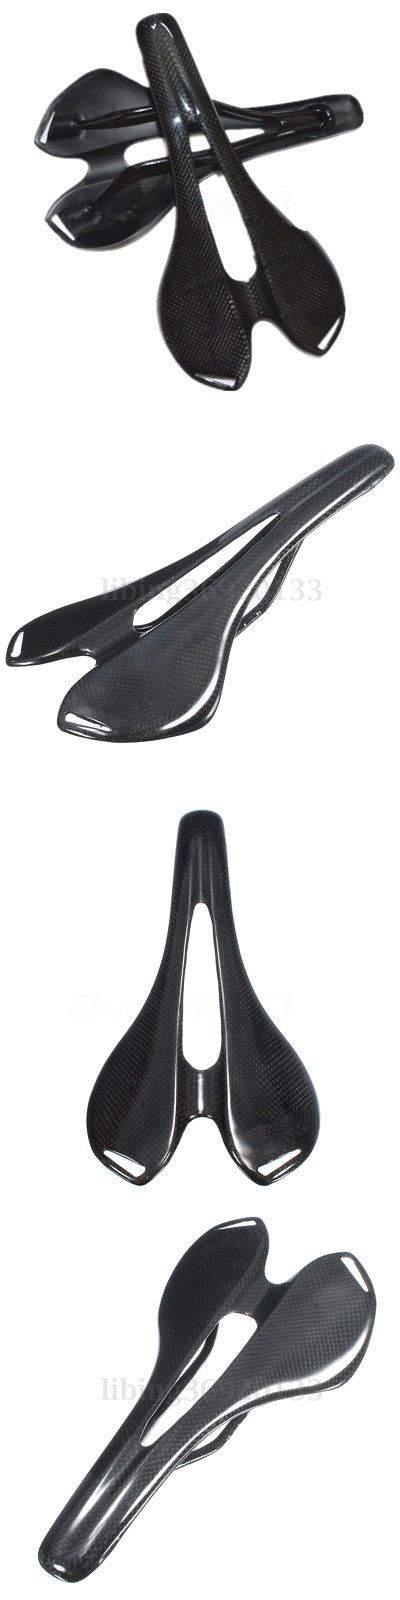 Saddles Seats 177822: Full Carbon Fiber Mountain Road Bike Cycling Mtb Saddle Bicycle Racing Seat Us -> BUY IT NOW ONLY: $32.59 on eBay!